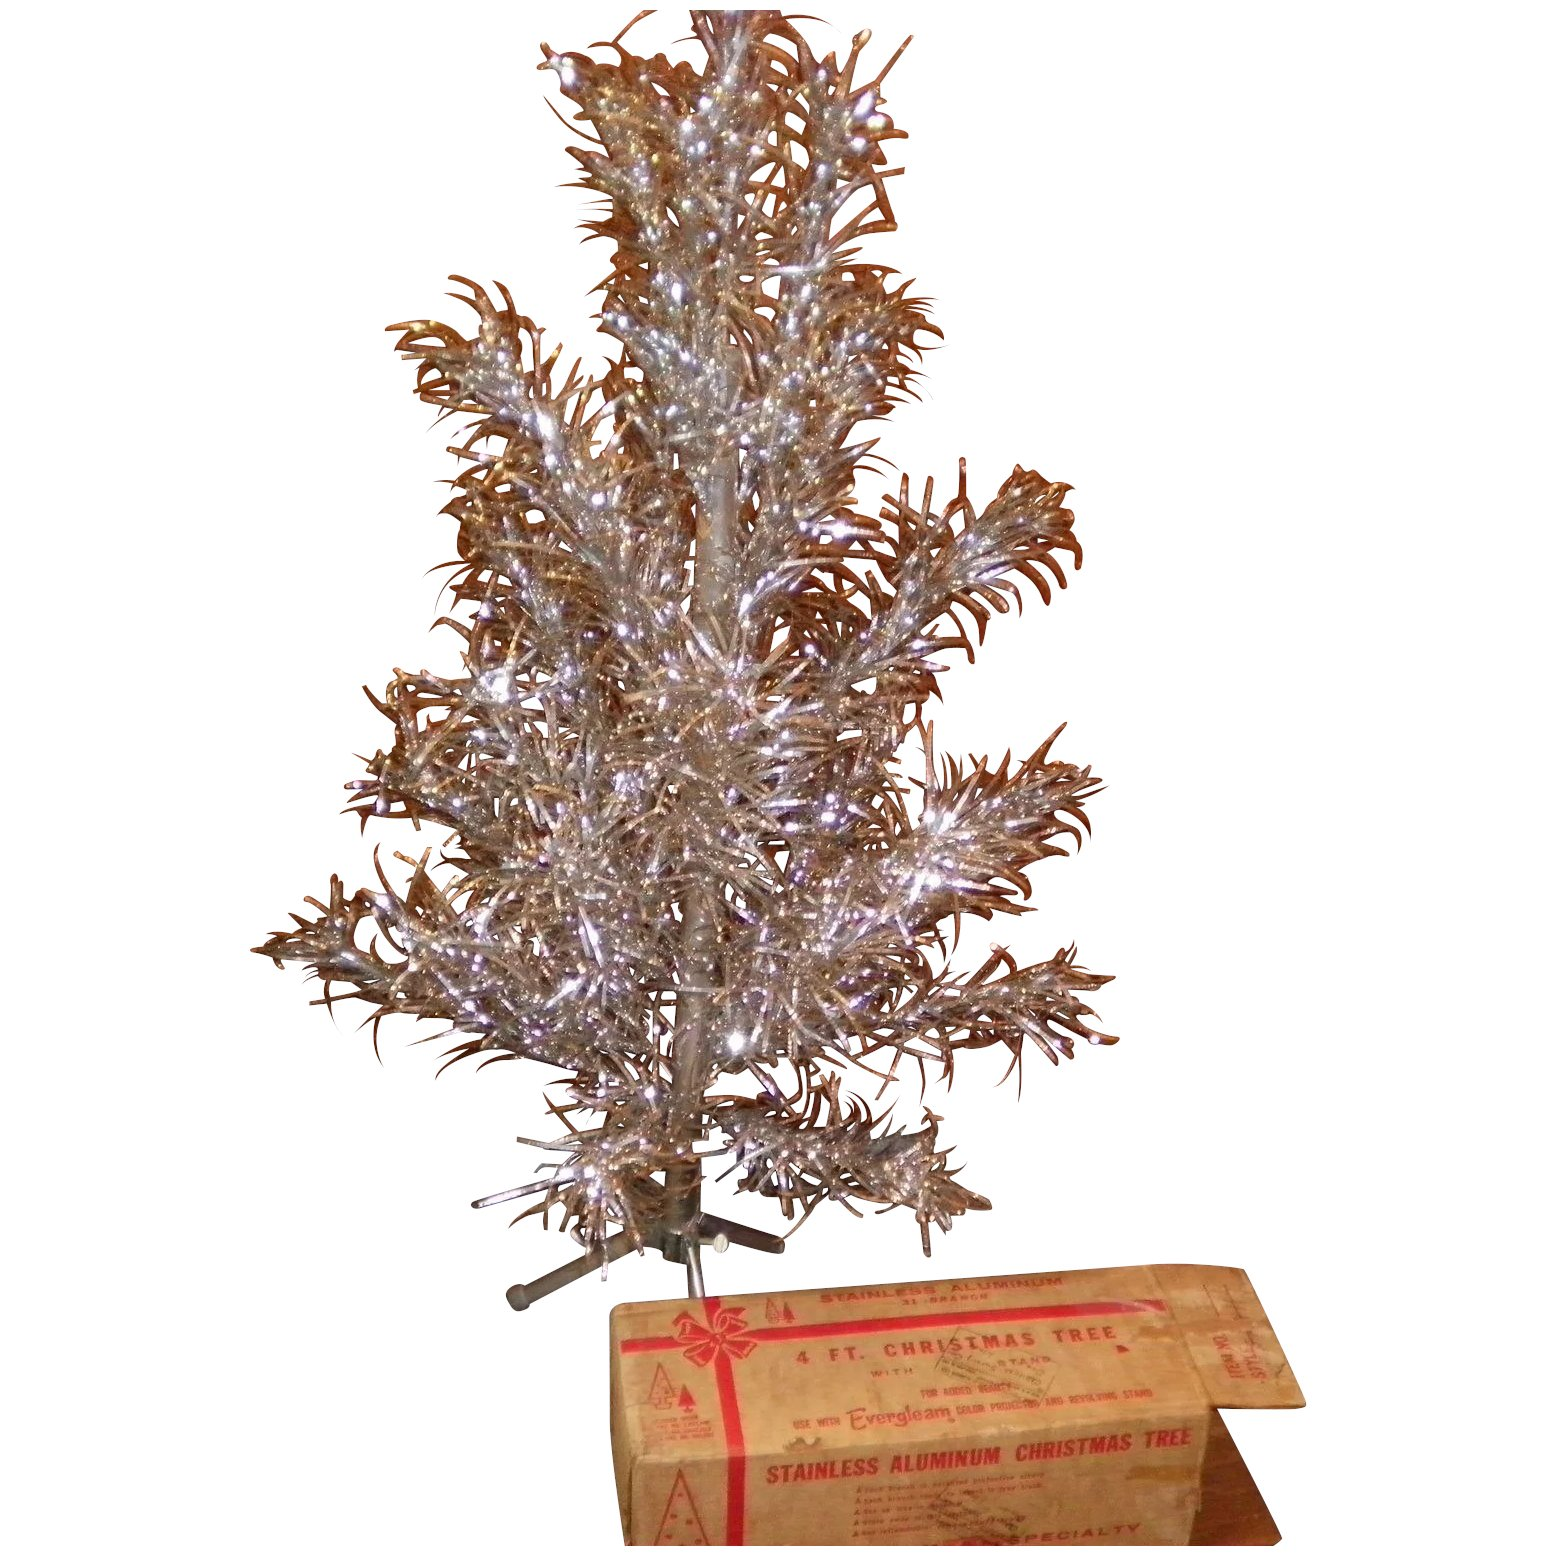 vintage 4 foot aluminum christmas tree by evergleam with the original box click to expand